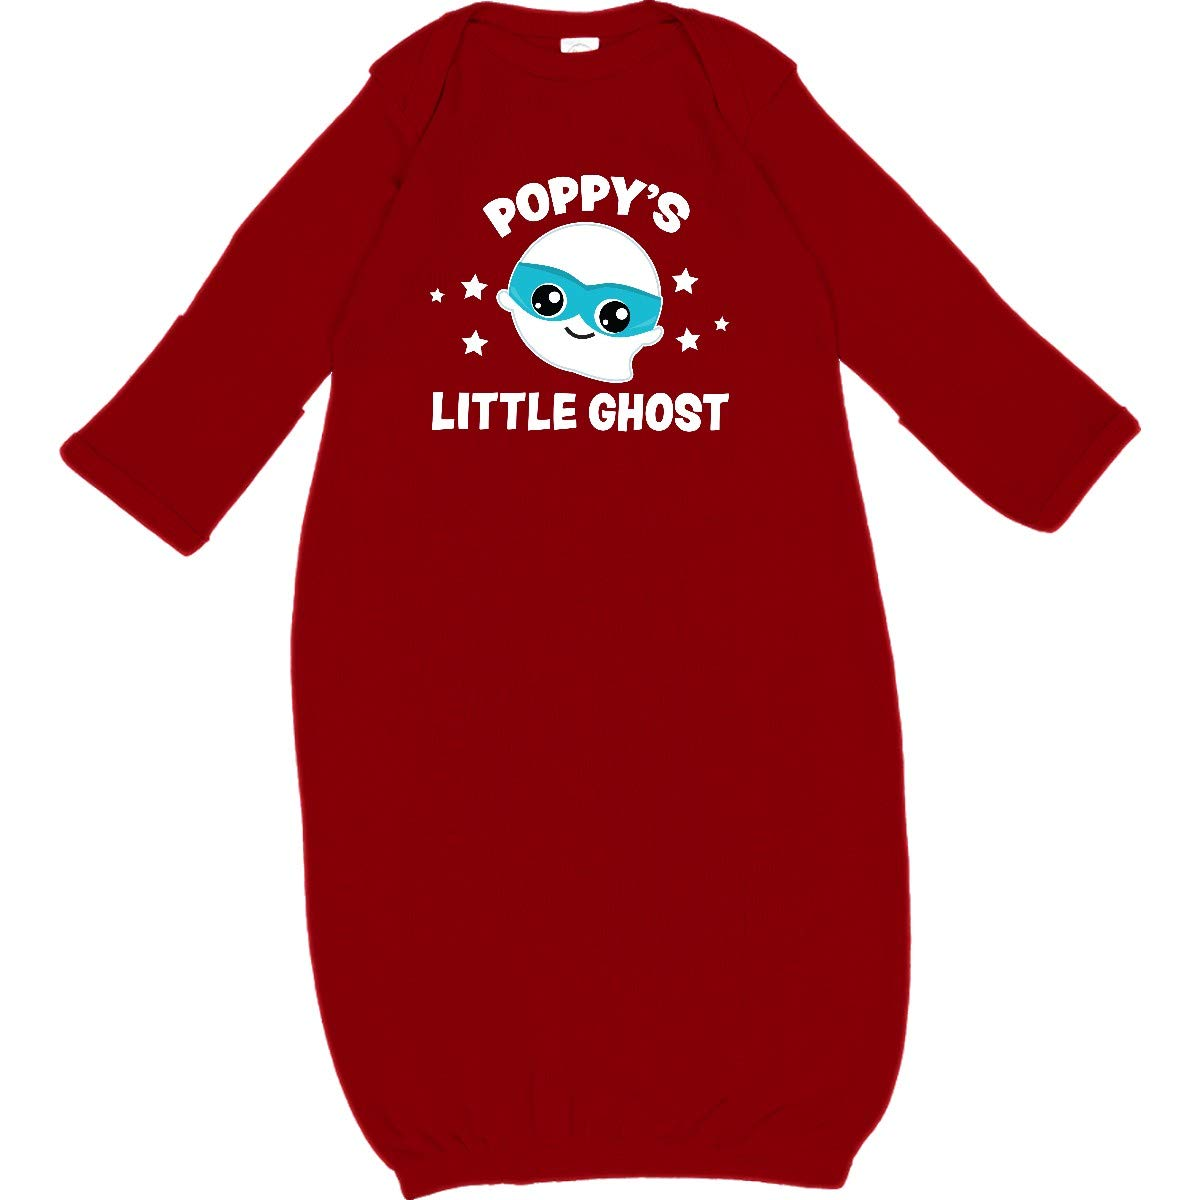 inktastic Cute Poppys Little Ghost with Stars Toddler Long Sleeve T-Shirt